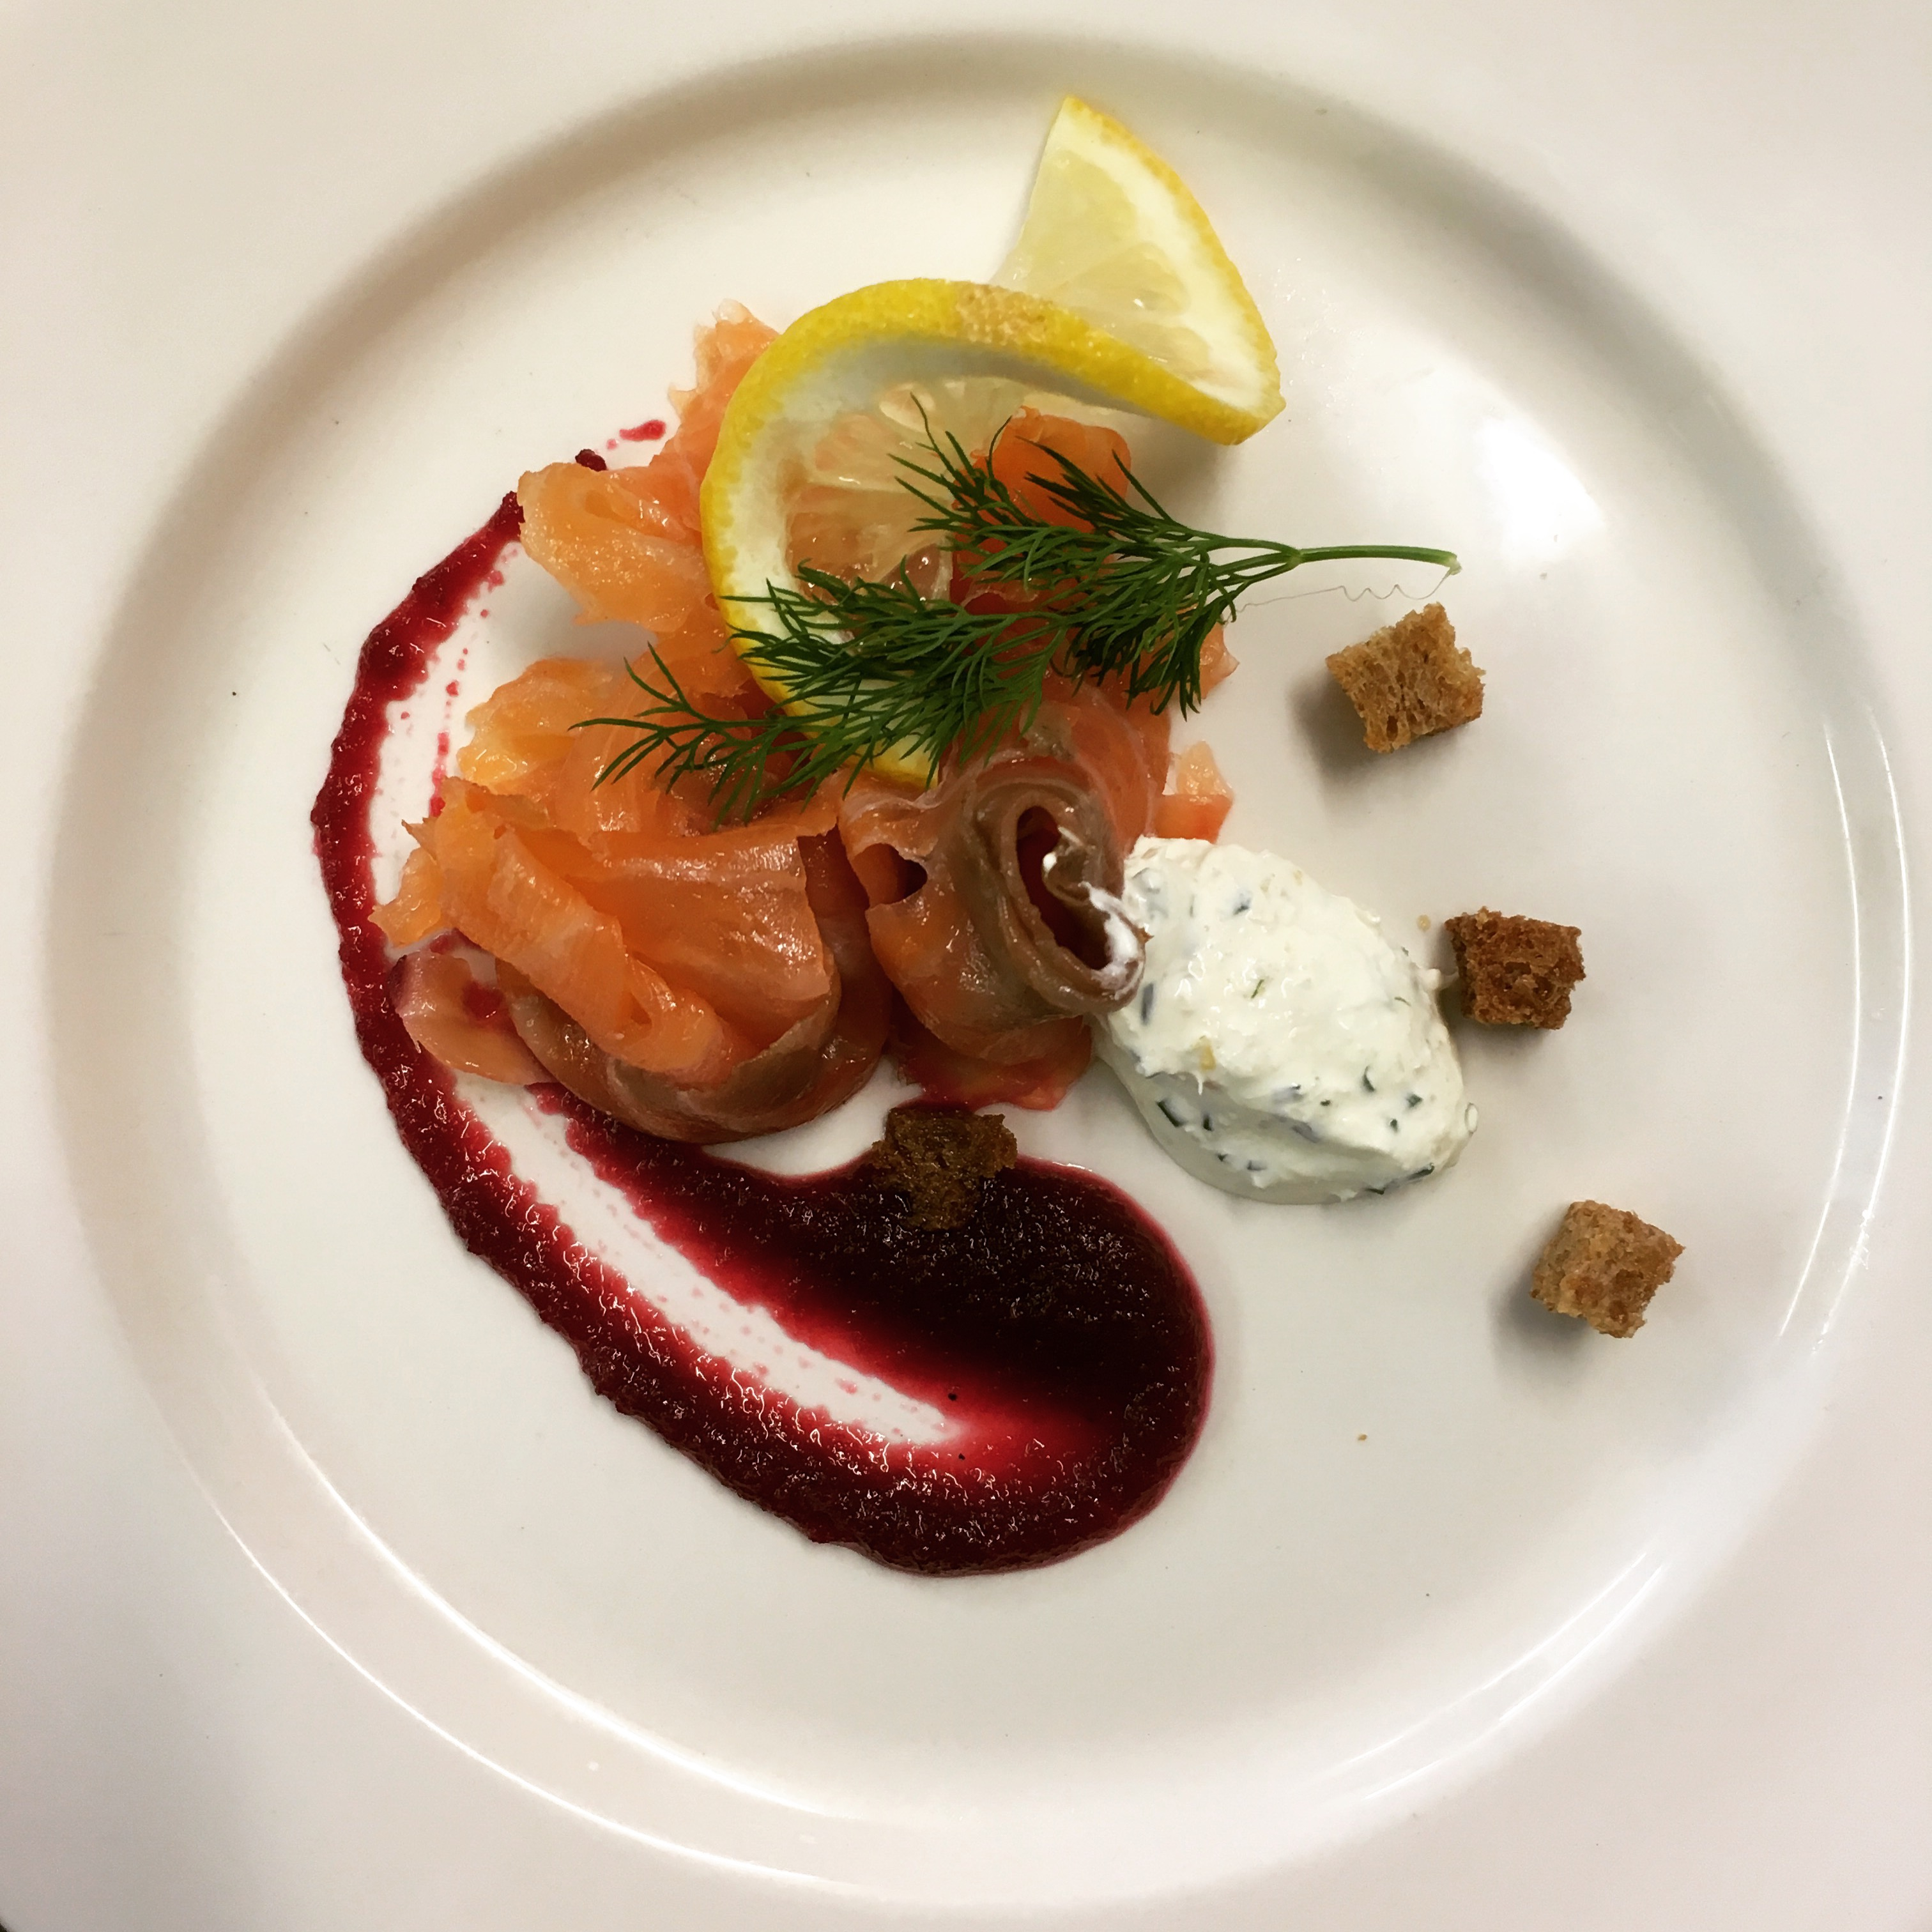 Springs smoked salmon